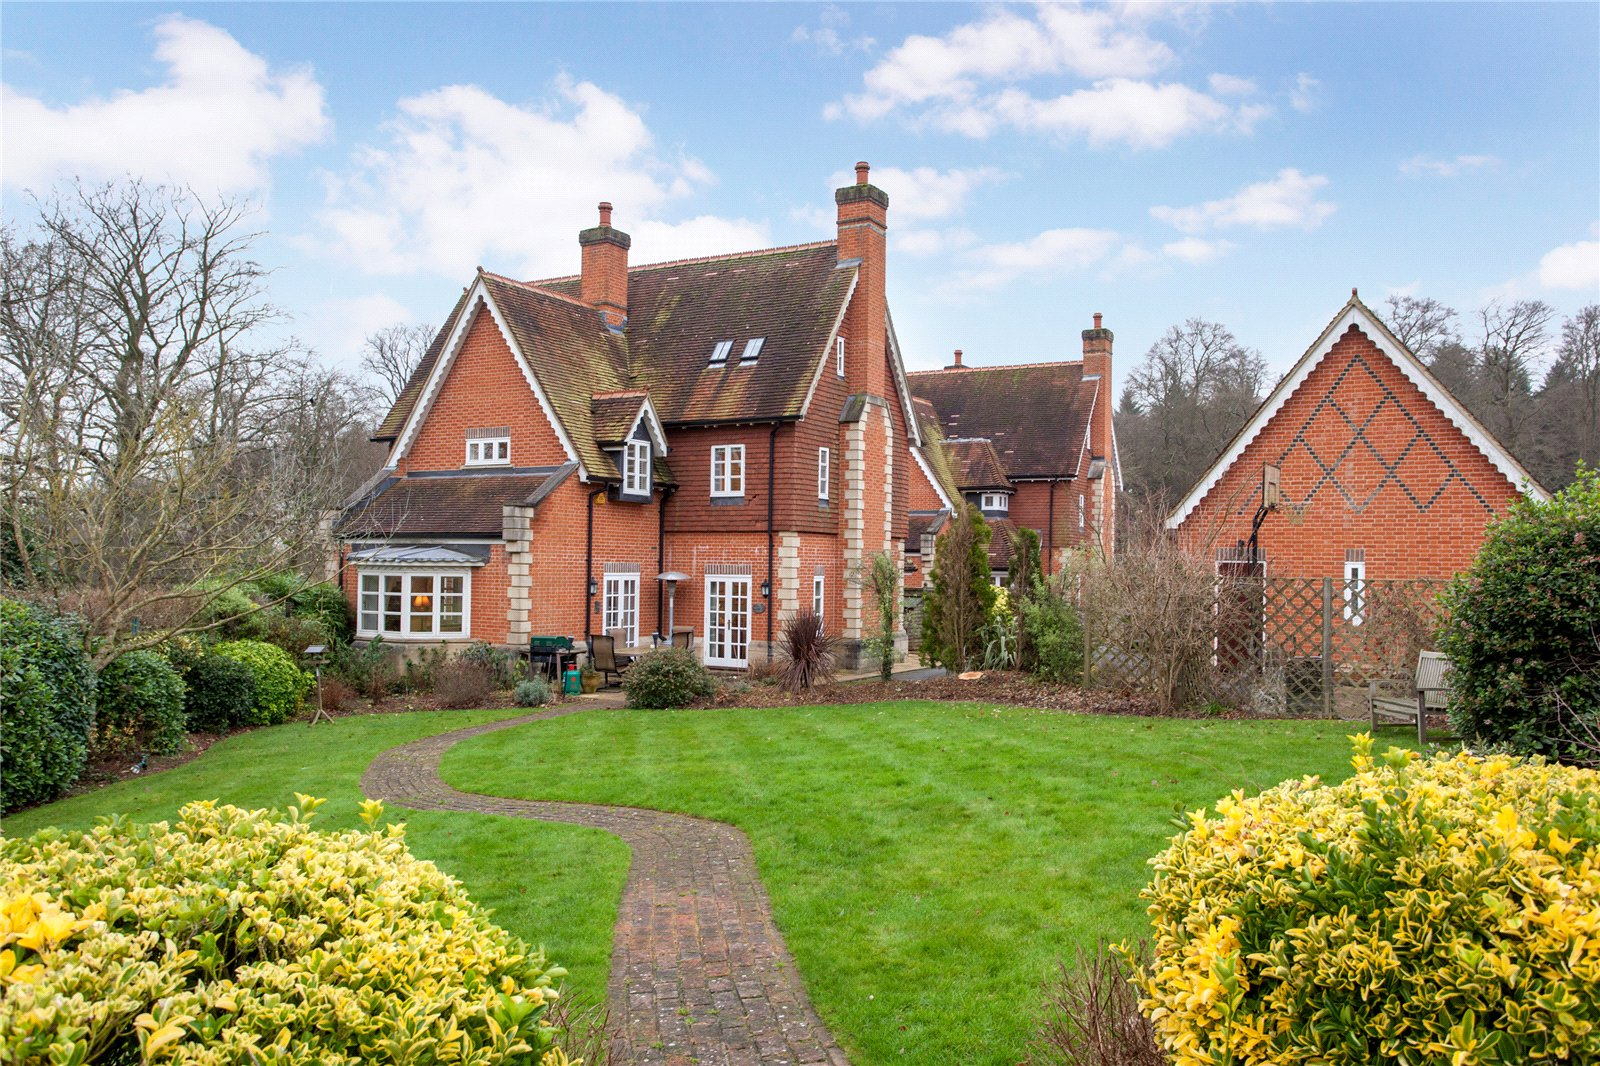 5 Bedrooms Detached House for sale in Lime Avenue, Kingwood, Henley-on-Thames, Oxfordshire, RG9